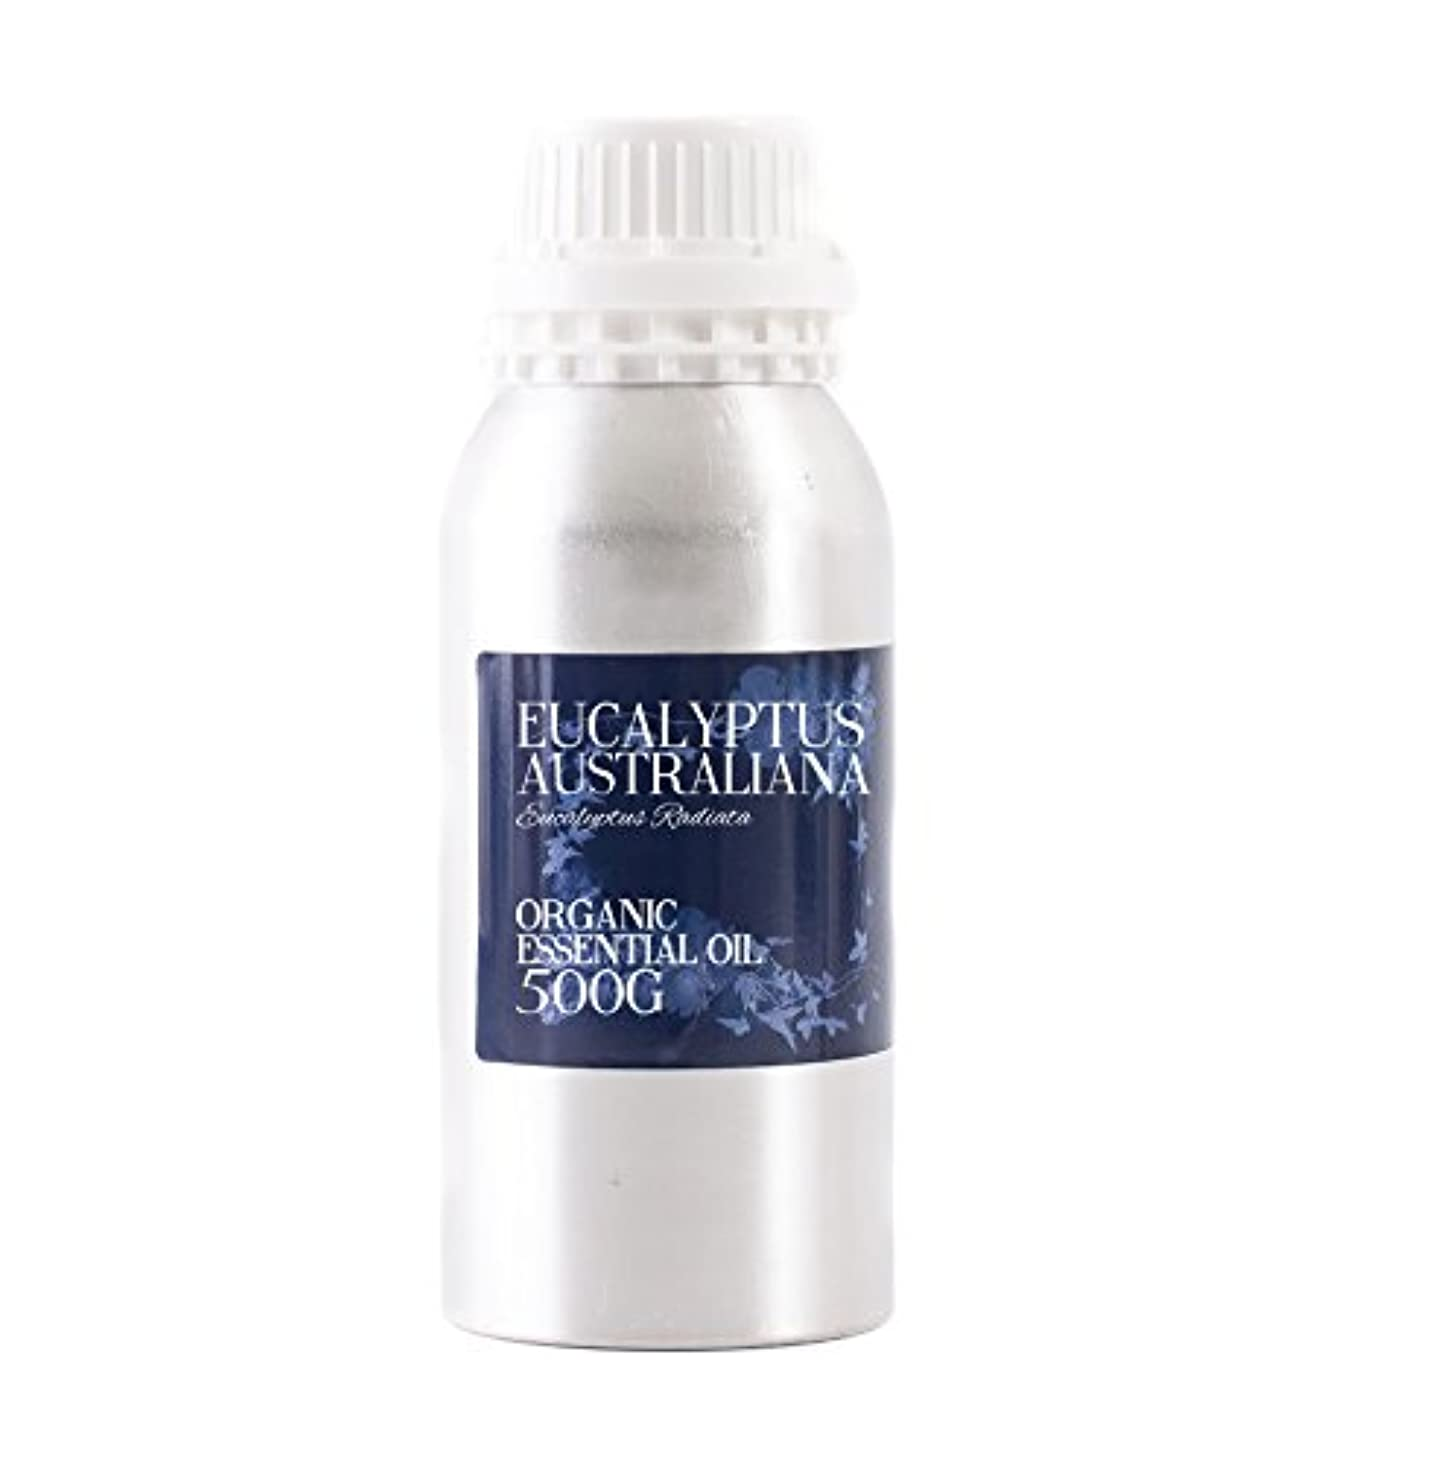 ドレイン泥エキスMystic Moments | Eucalyptus Australiana (Radiata) Organic Essential Oil - 500g - 100% Pure